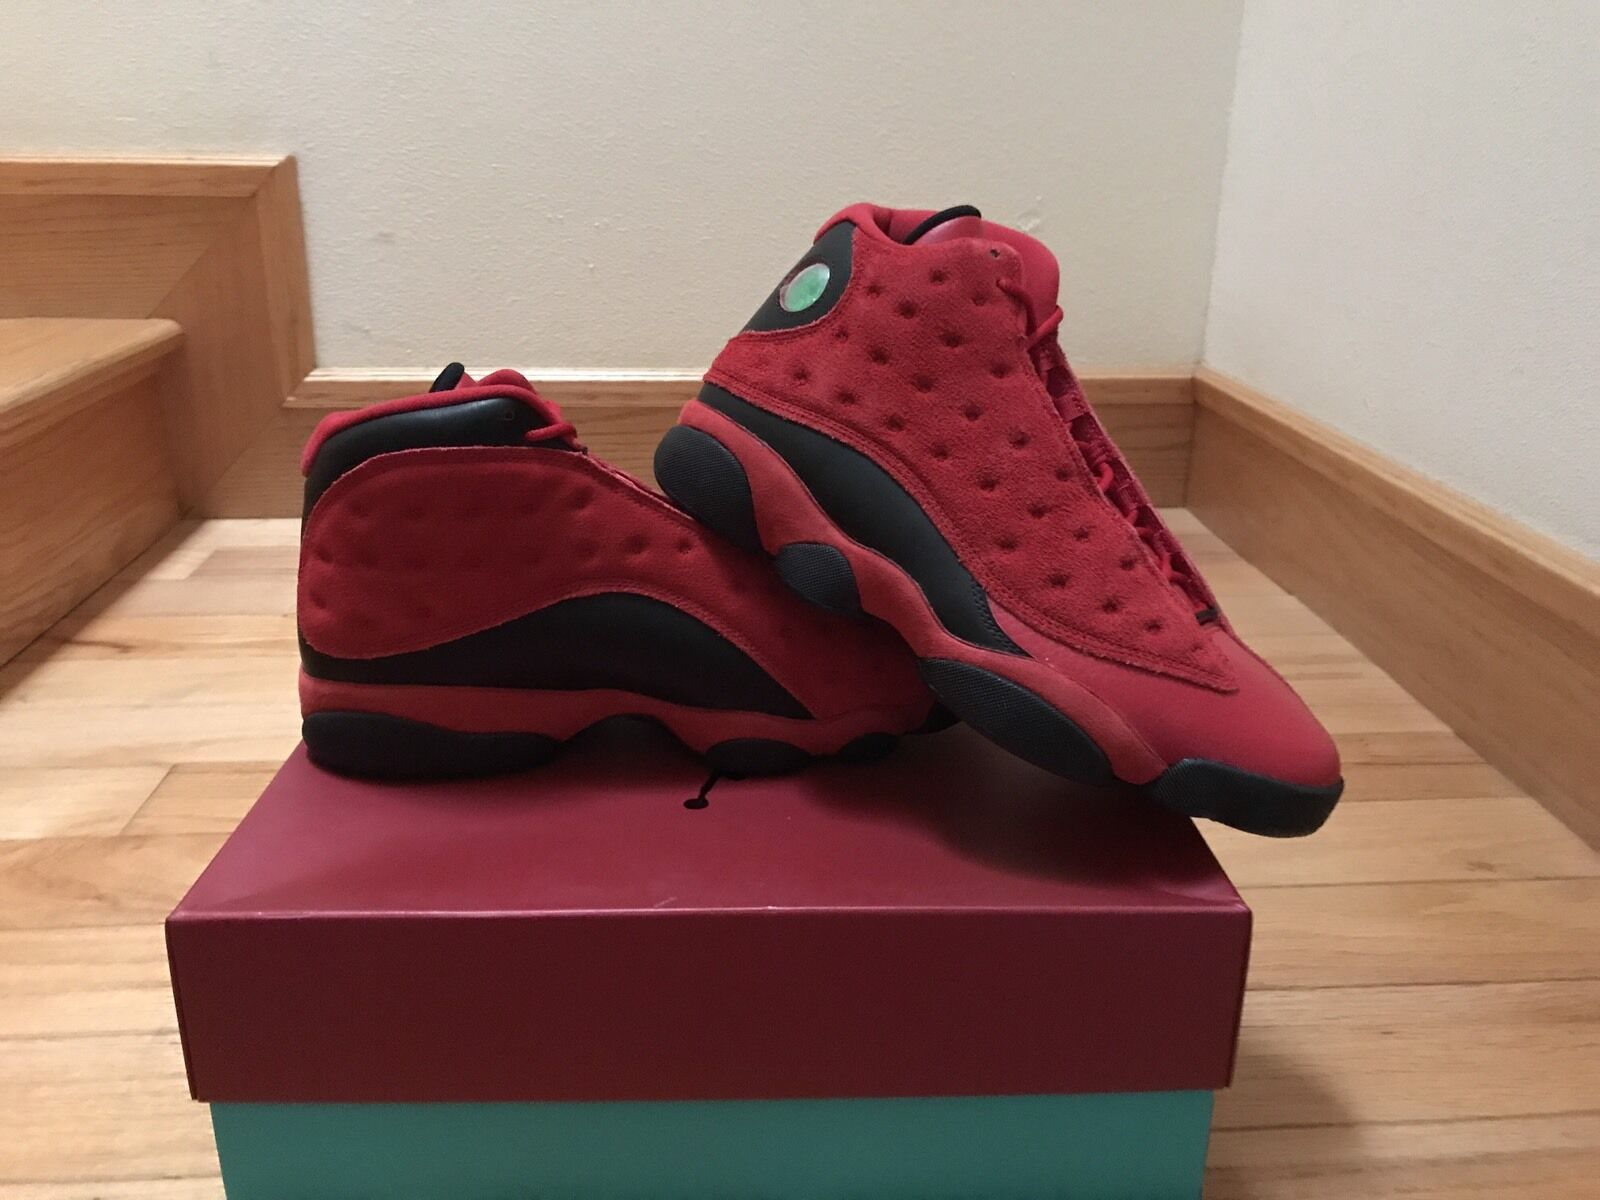 NIKE AIR JORDAN JORDAN JORDAN 13 RETRO CHINESE SINGLES DAY 888164-601 SIZE 9.5 WHAT IS LOVE e891e3